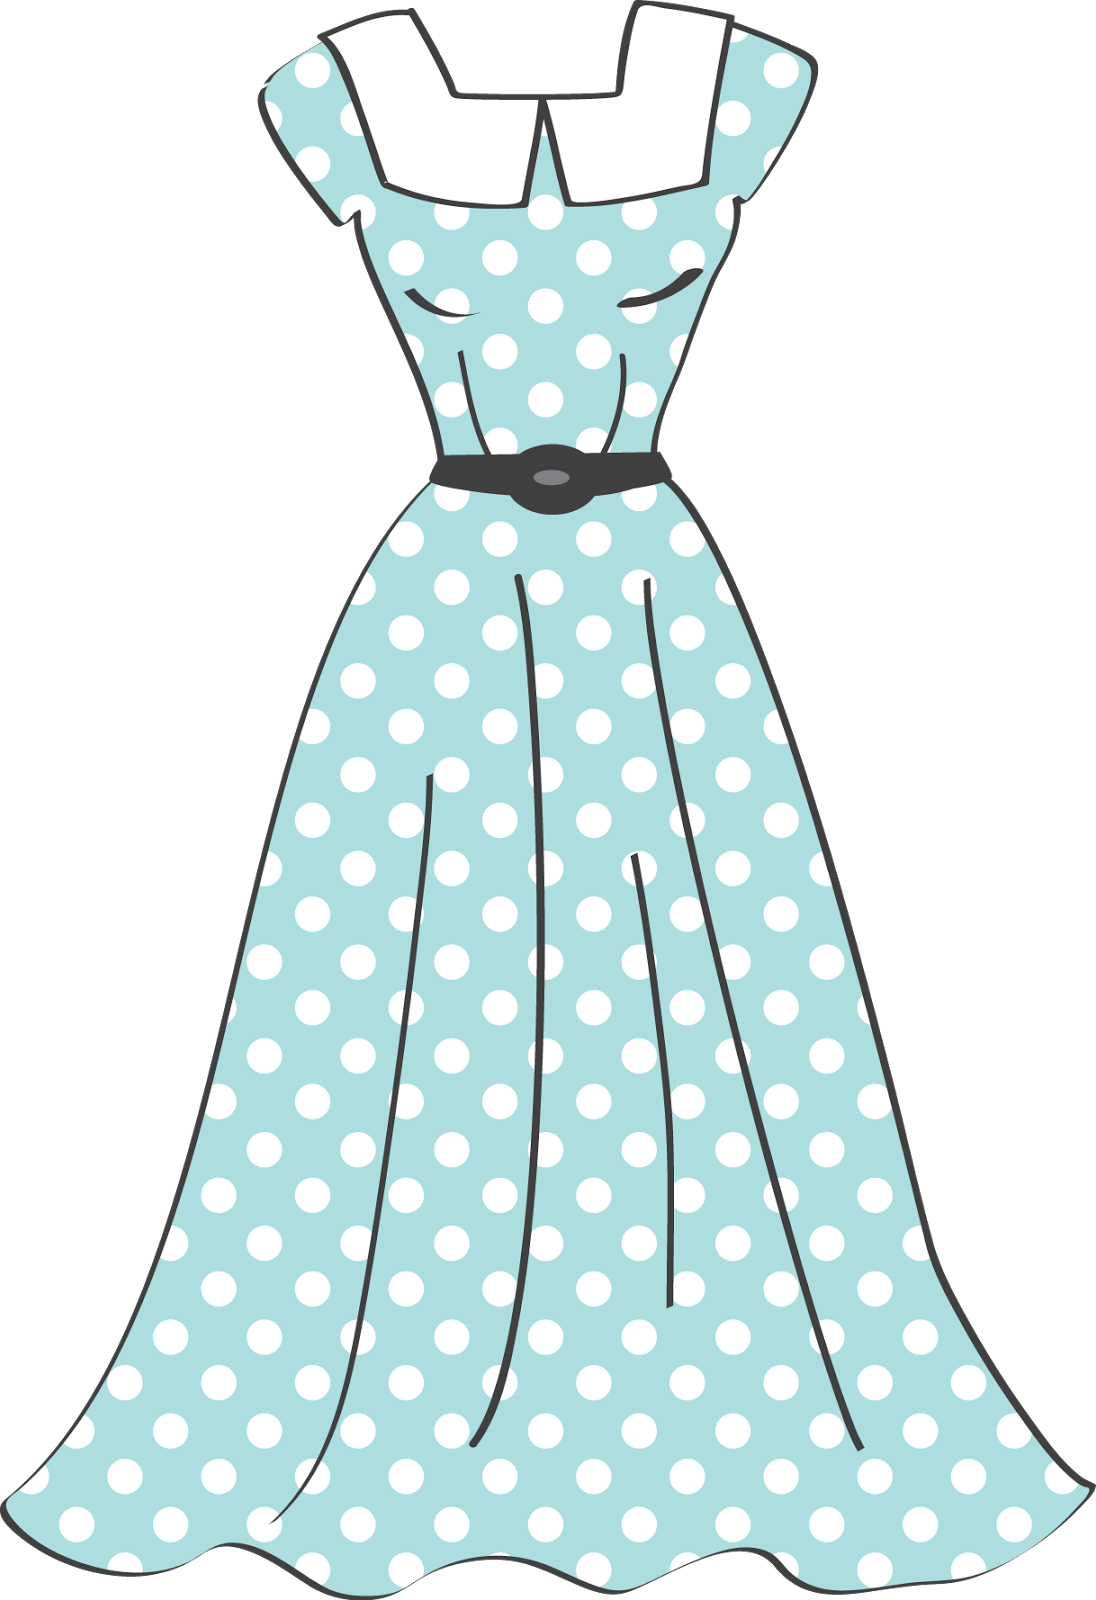 Retro Sewing Clip Art. | Oh My Fiesta For Ladies!